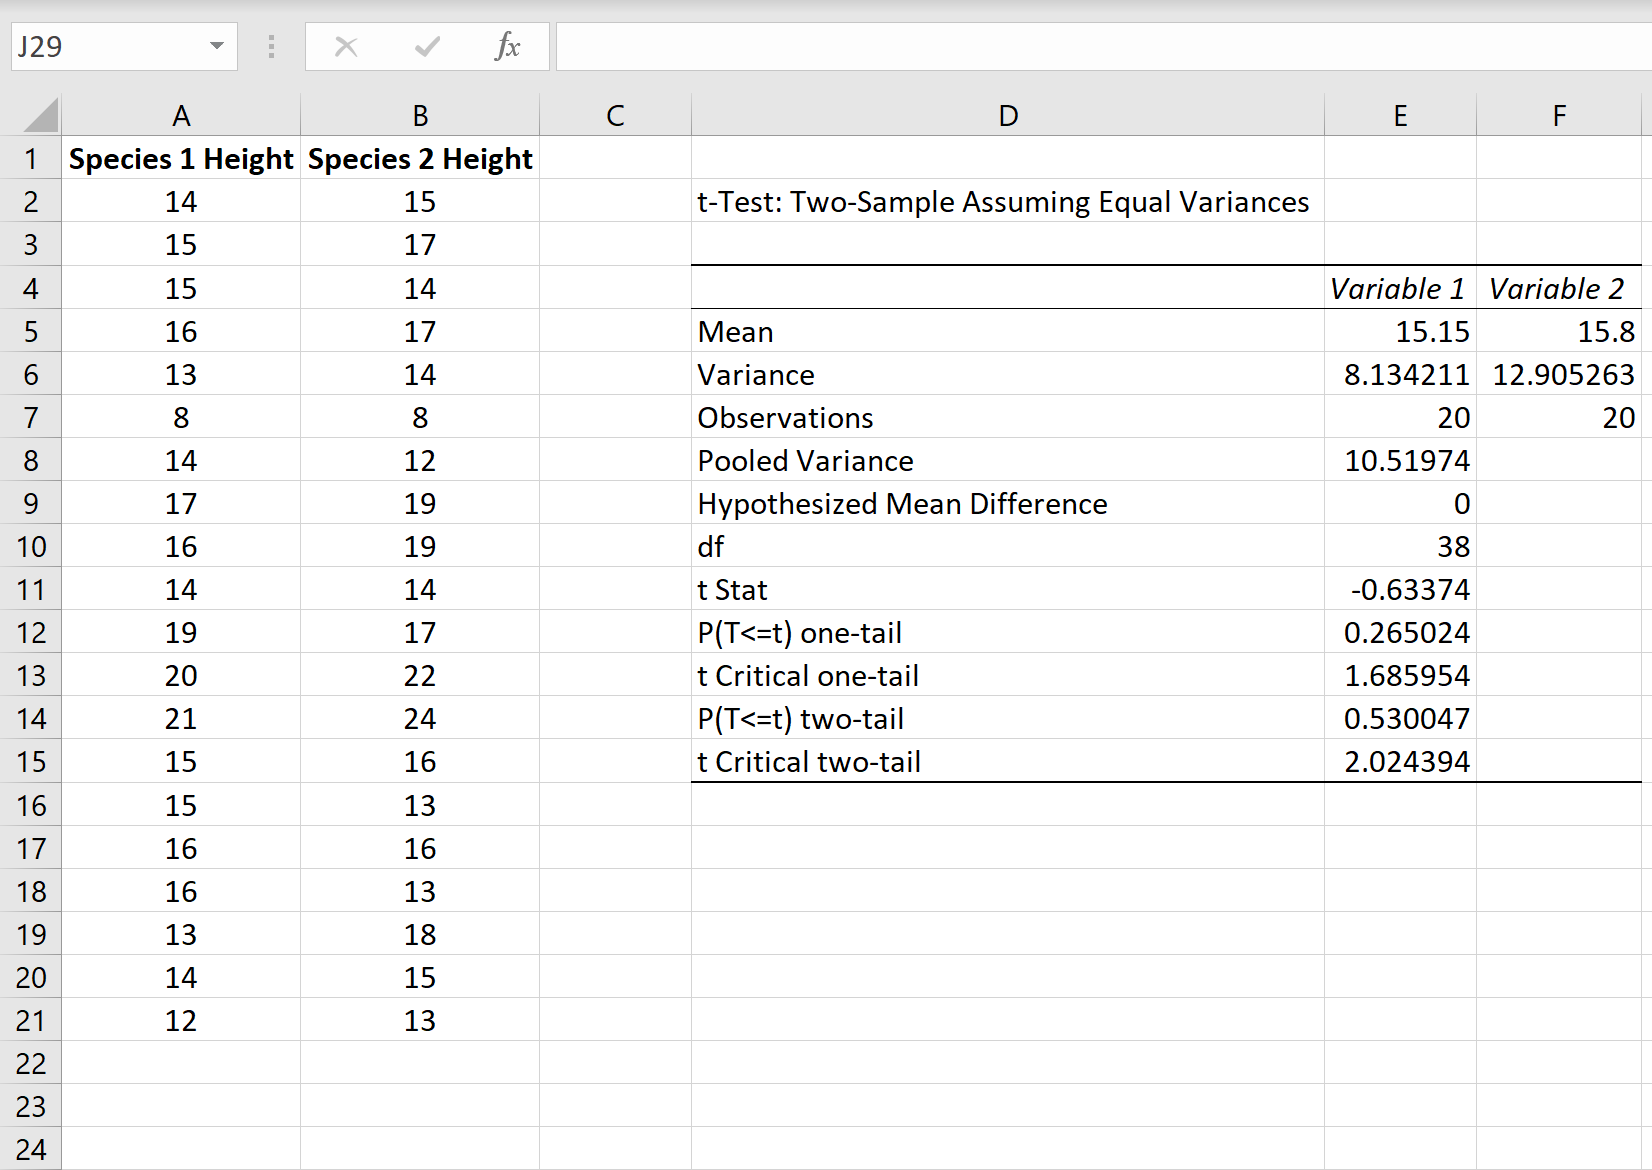 How to interpret results of a two sample t-test in Excel